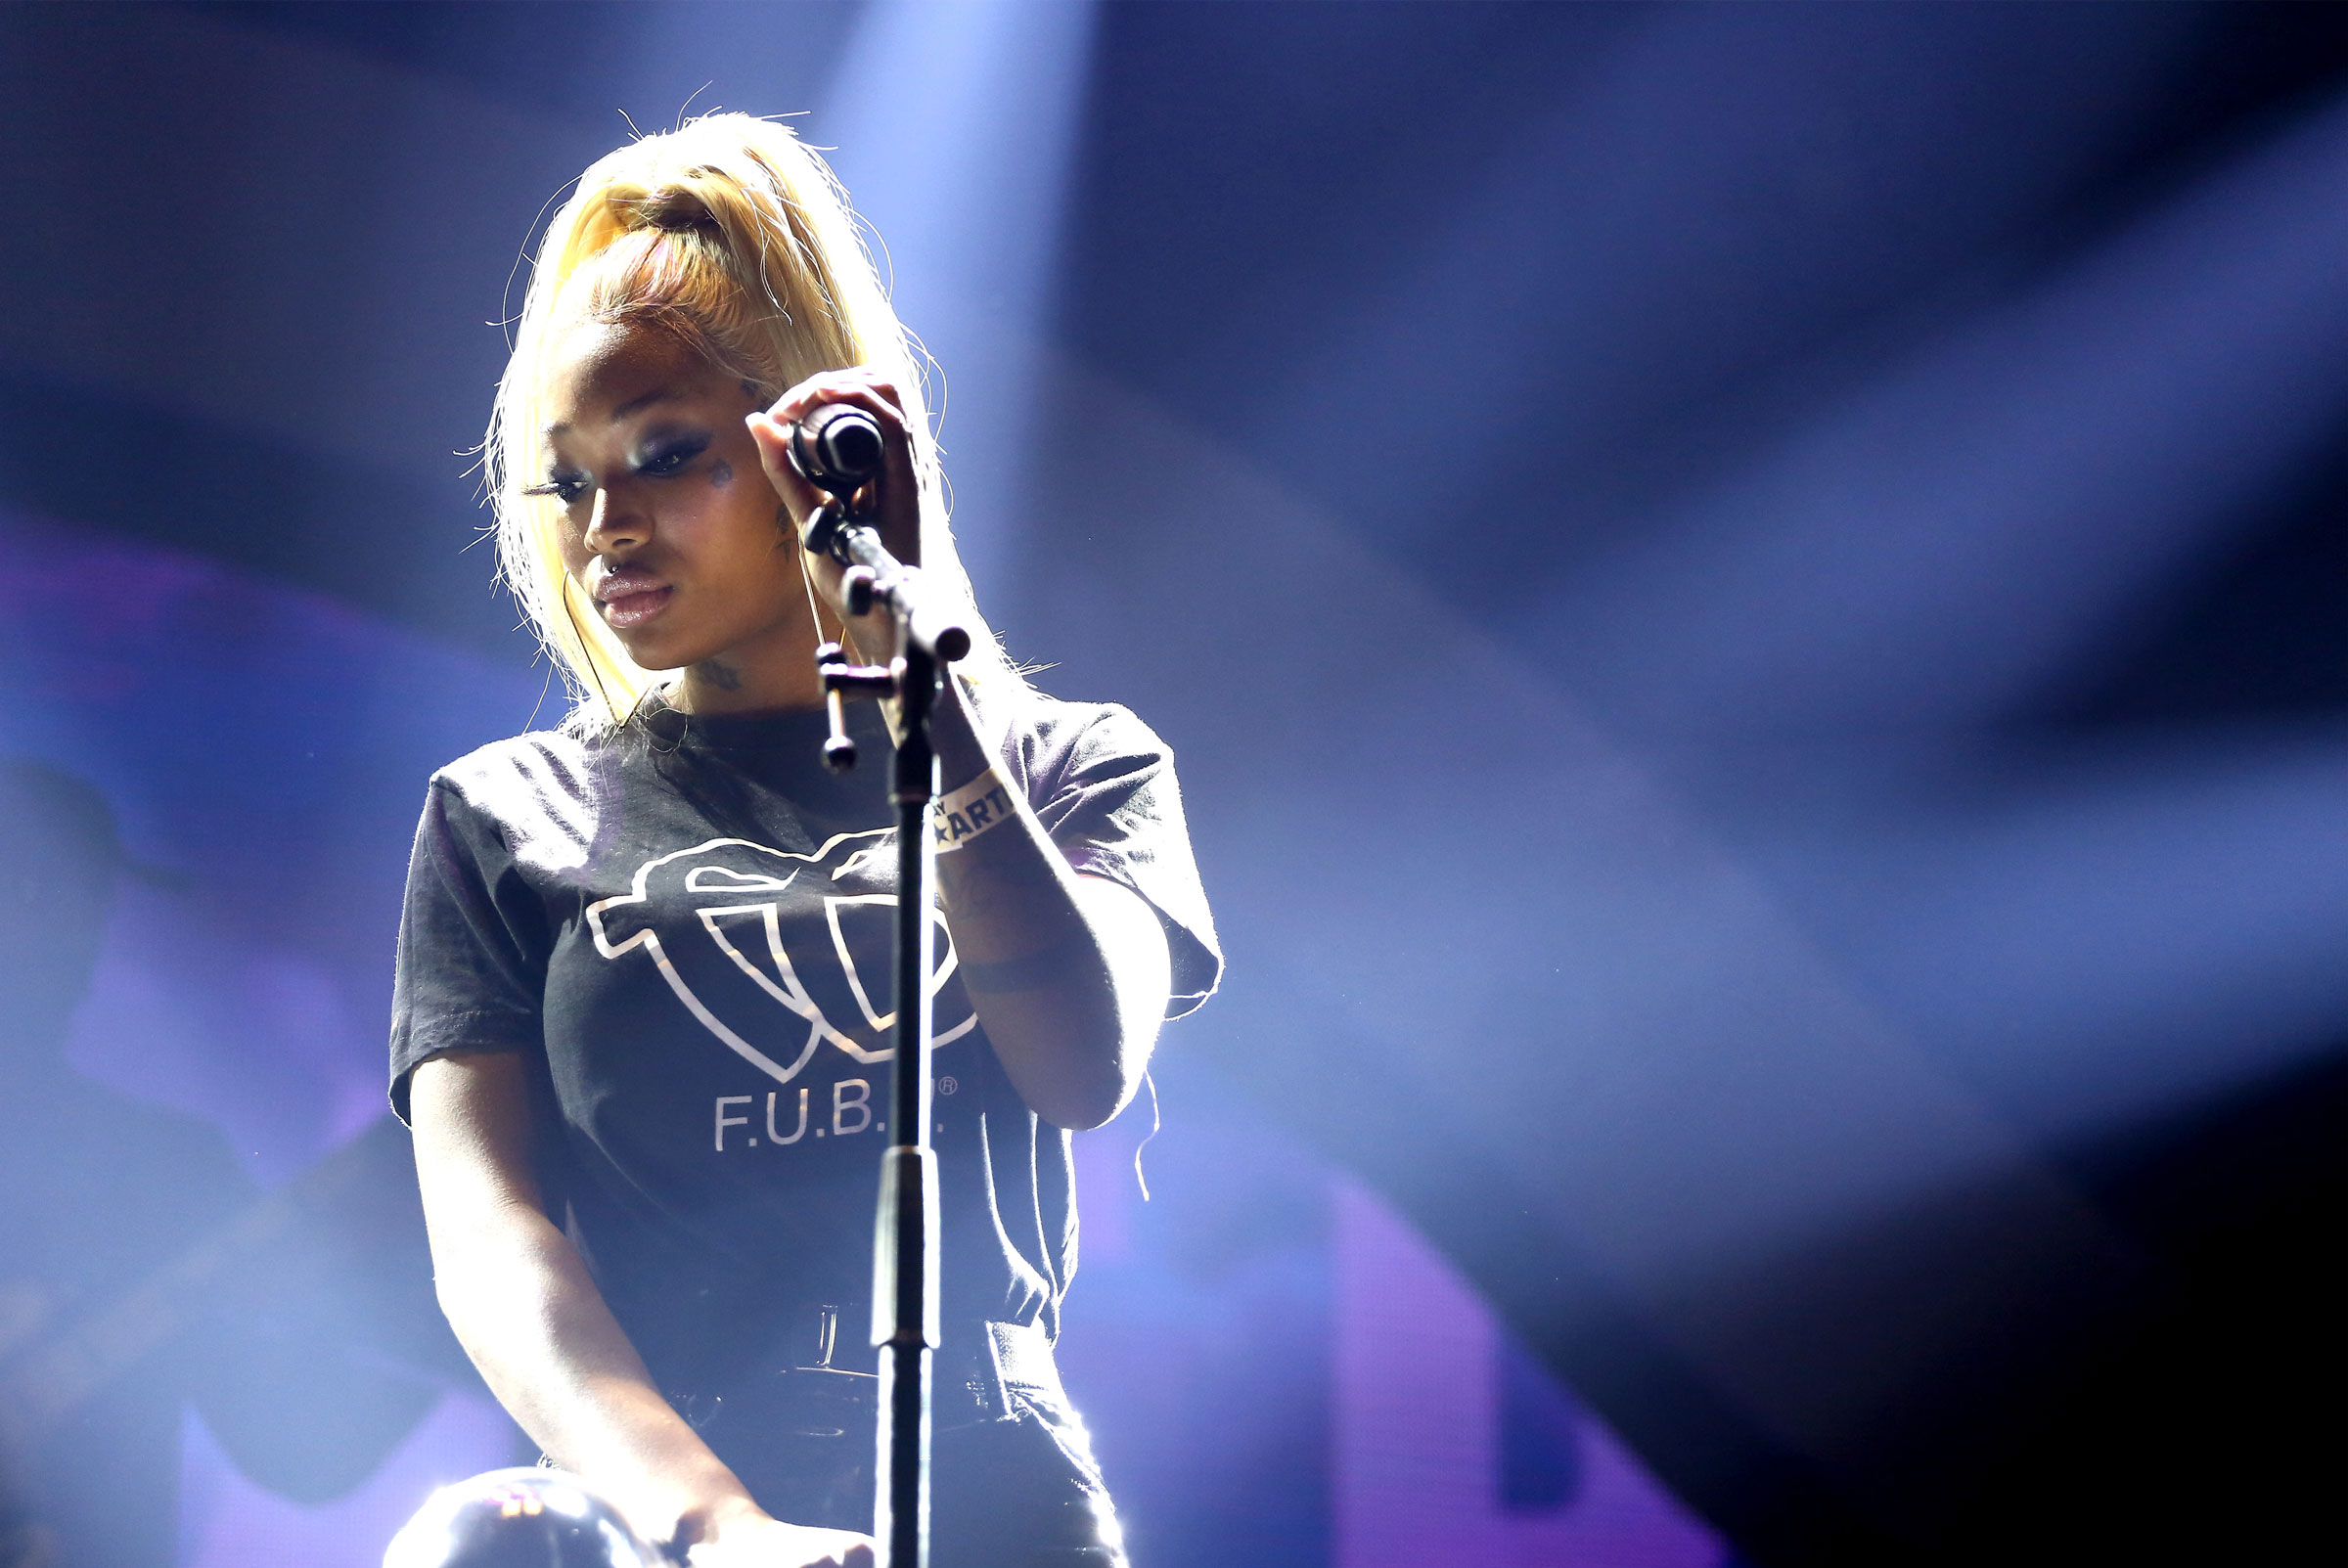 Summer walker, a young Black woman, sings on stage. Her hair is in a long blond ponytail and she wears a t-shirt.